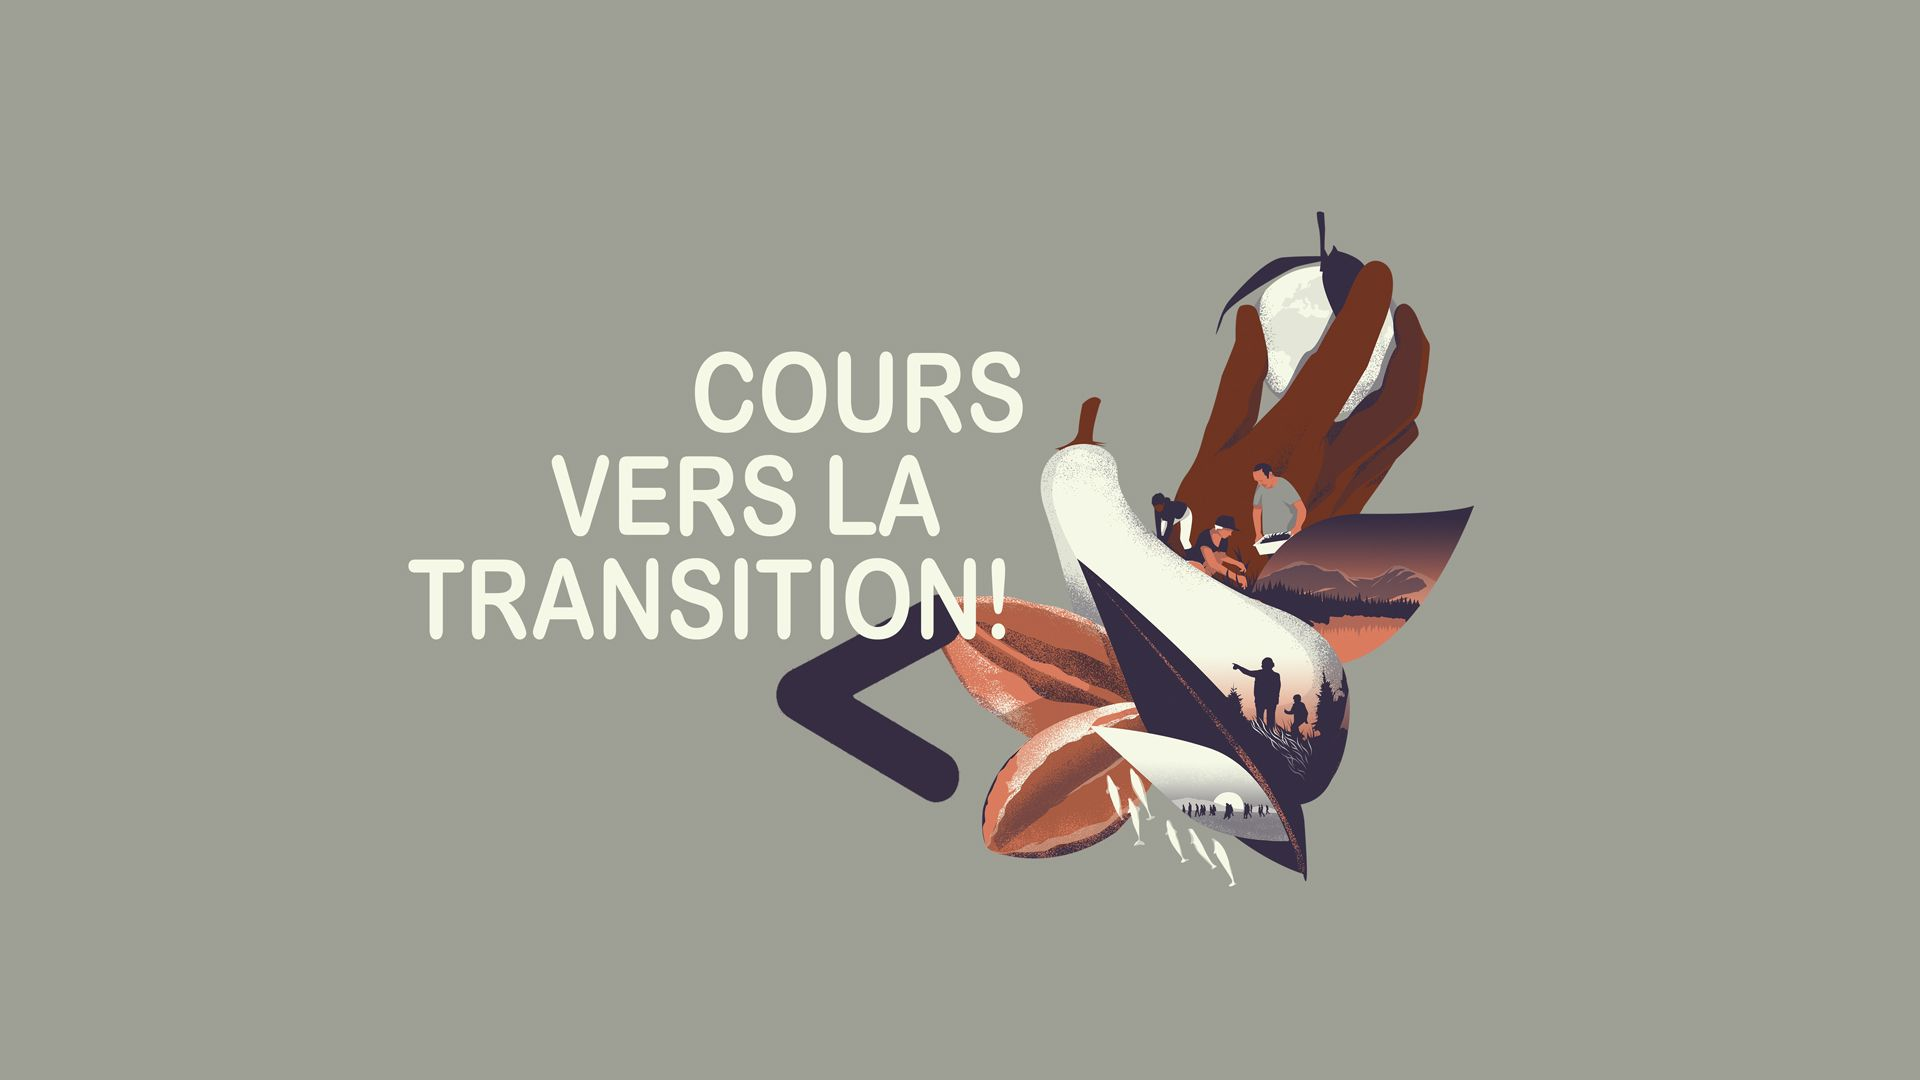 COURS_VERS_TRANSITION.jpg